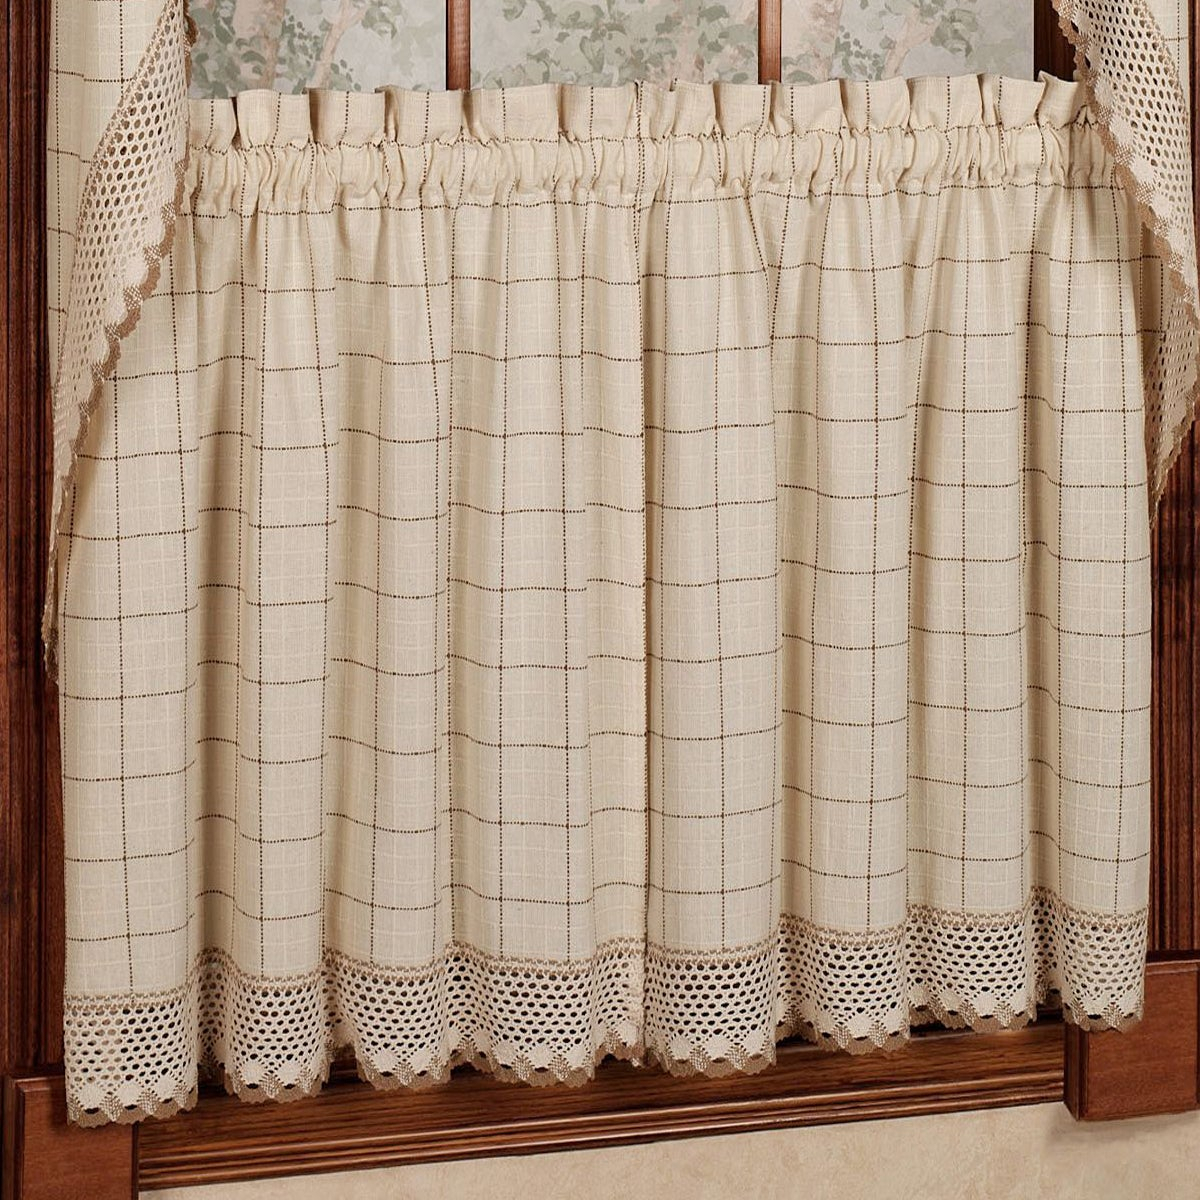 Cotton Classic Toast Window Pane Pattern And Crotchet Trim Tiers, Swags And Valance Options Throughout Cotton Lace 5 Piece Window Tier And Swag Sets (View 6 of 20)